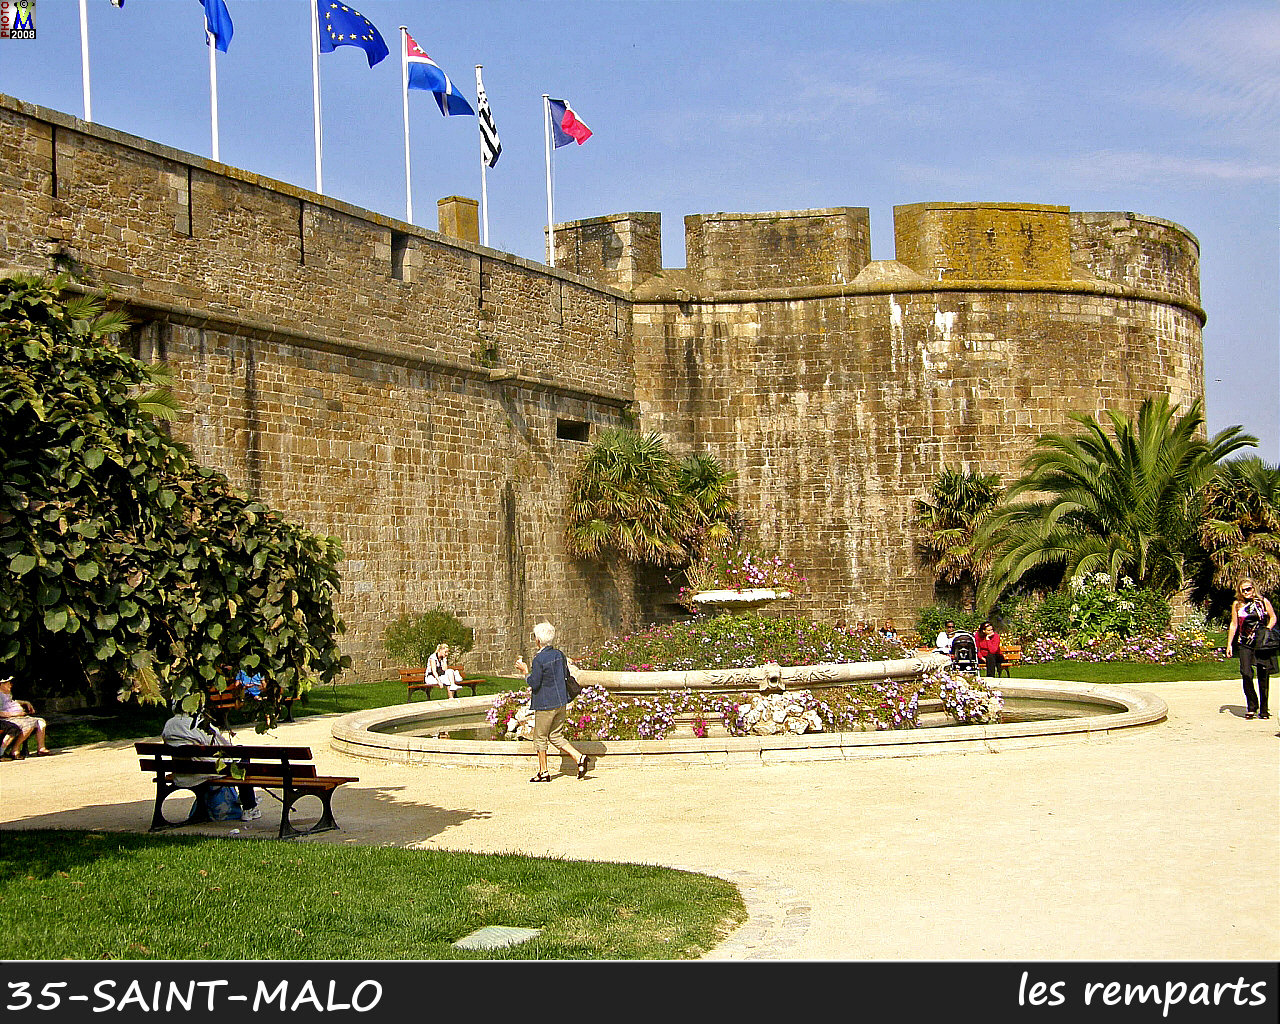 35StMALO_remparts_106.jpg